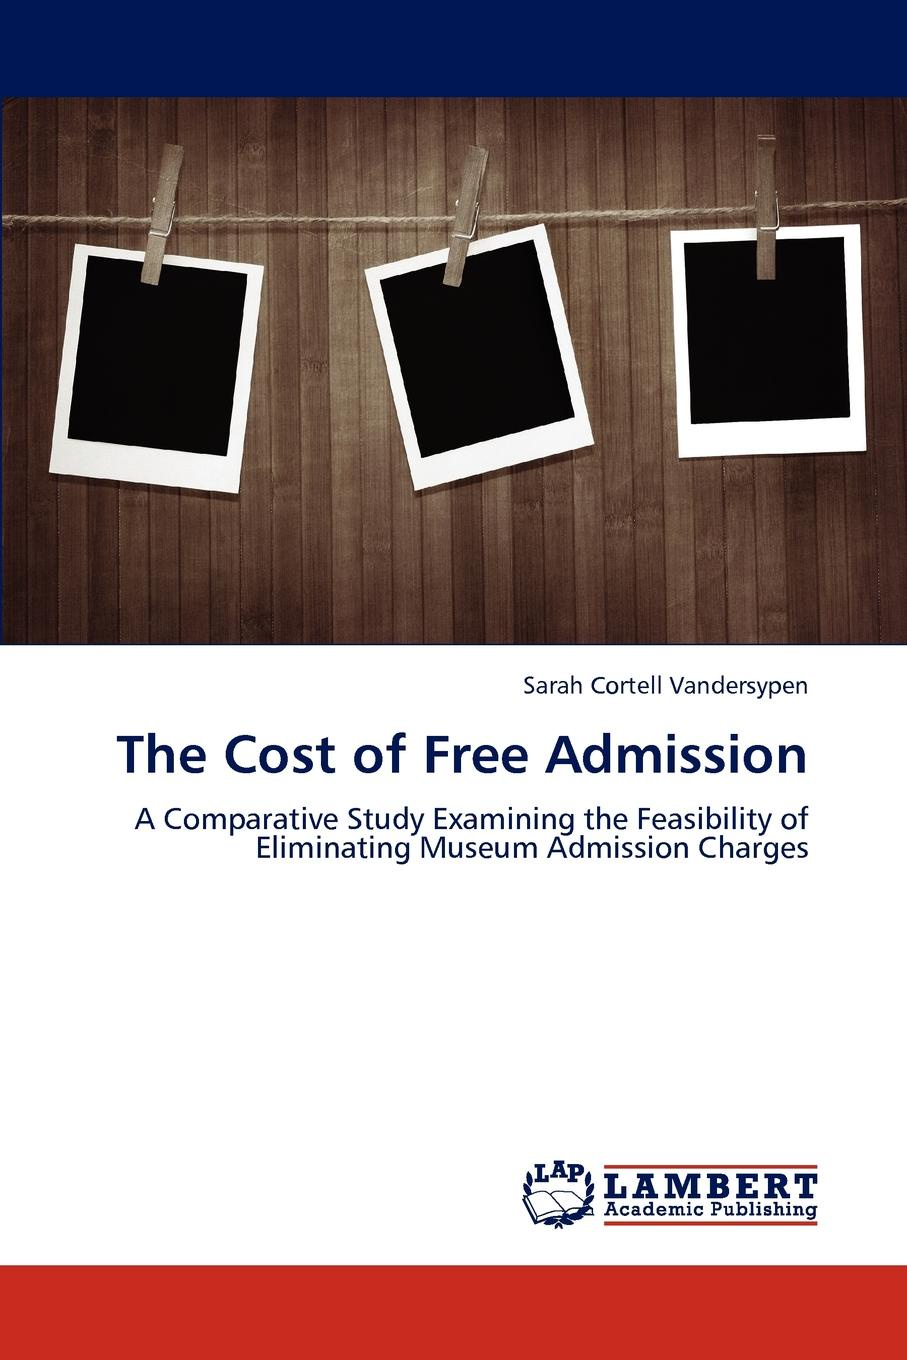 лучшая цена Sarah Cortell Vandersypen The Cost of Free Admission